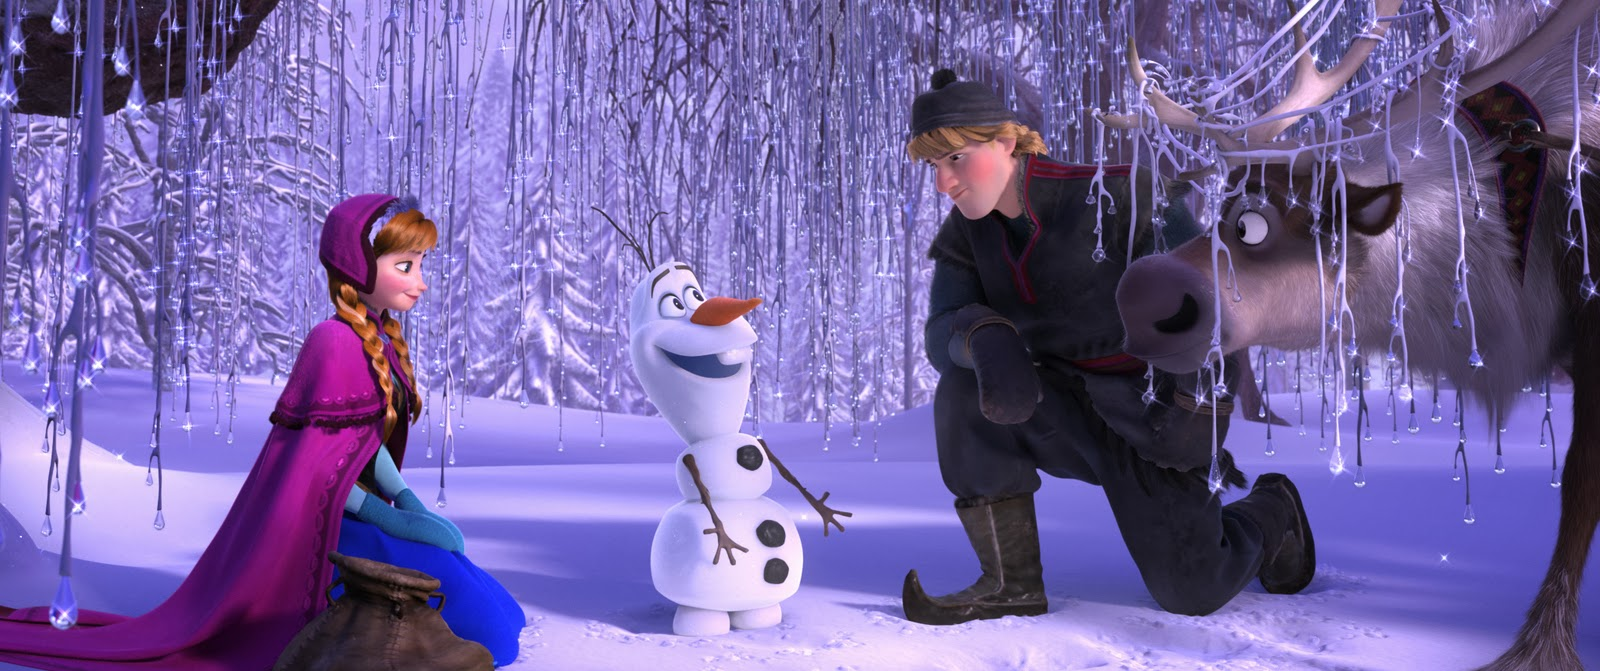 Disney's 'Frozen': The Acting and Performance Analysis